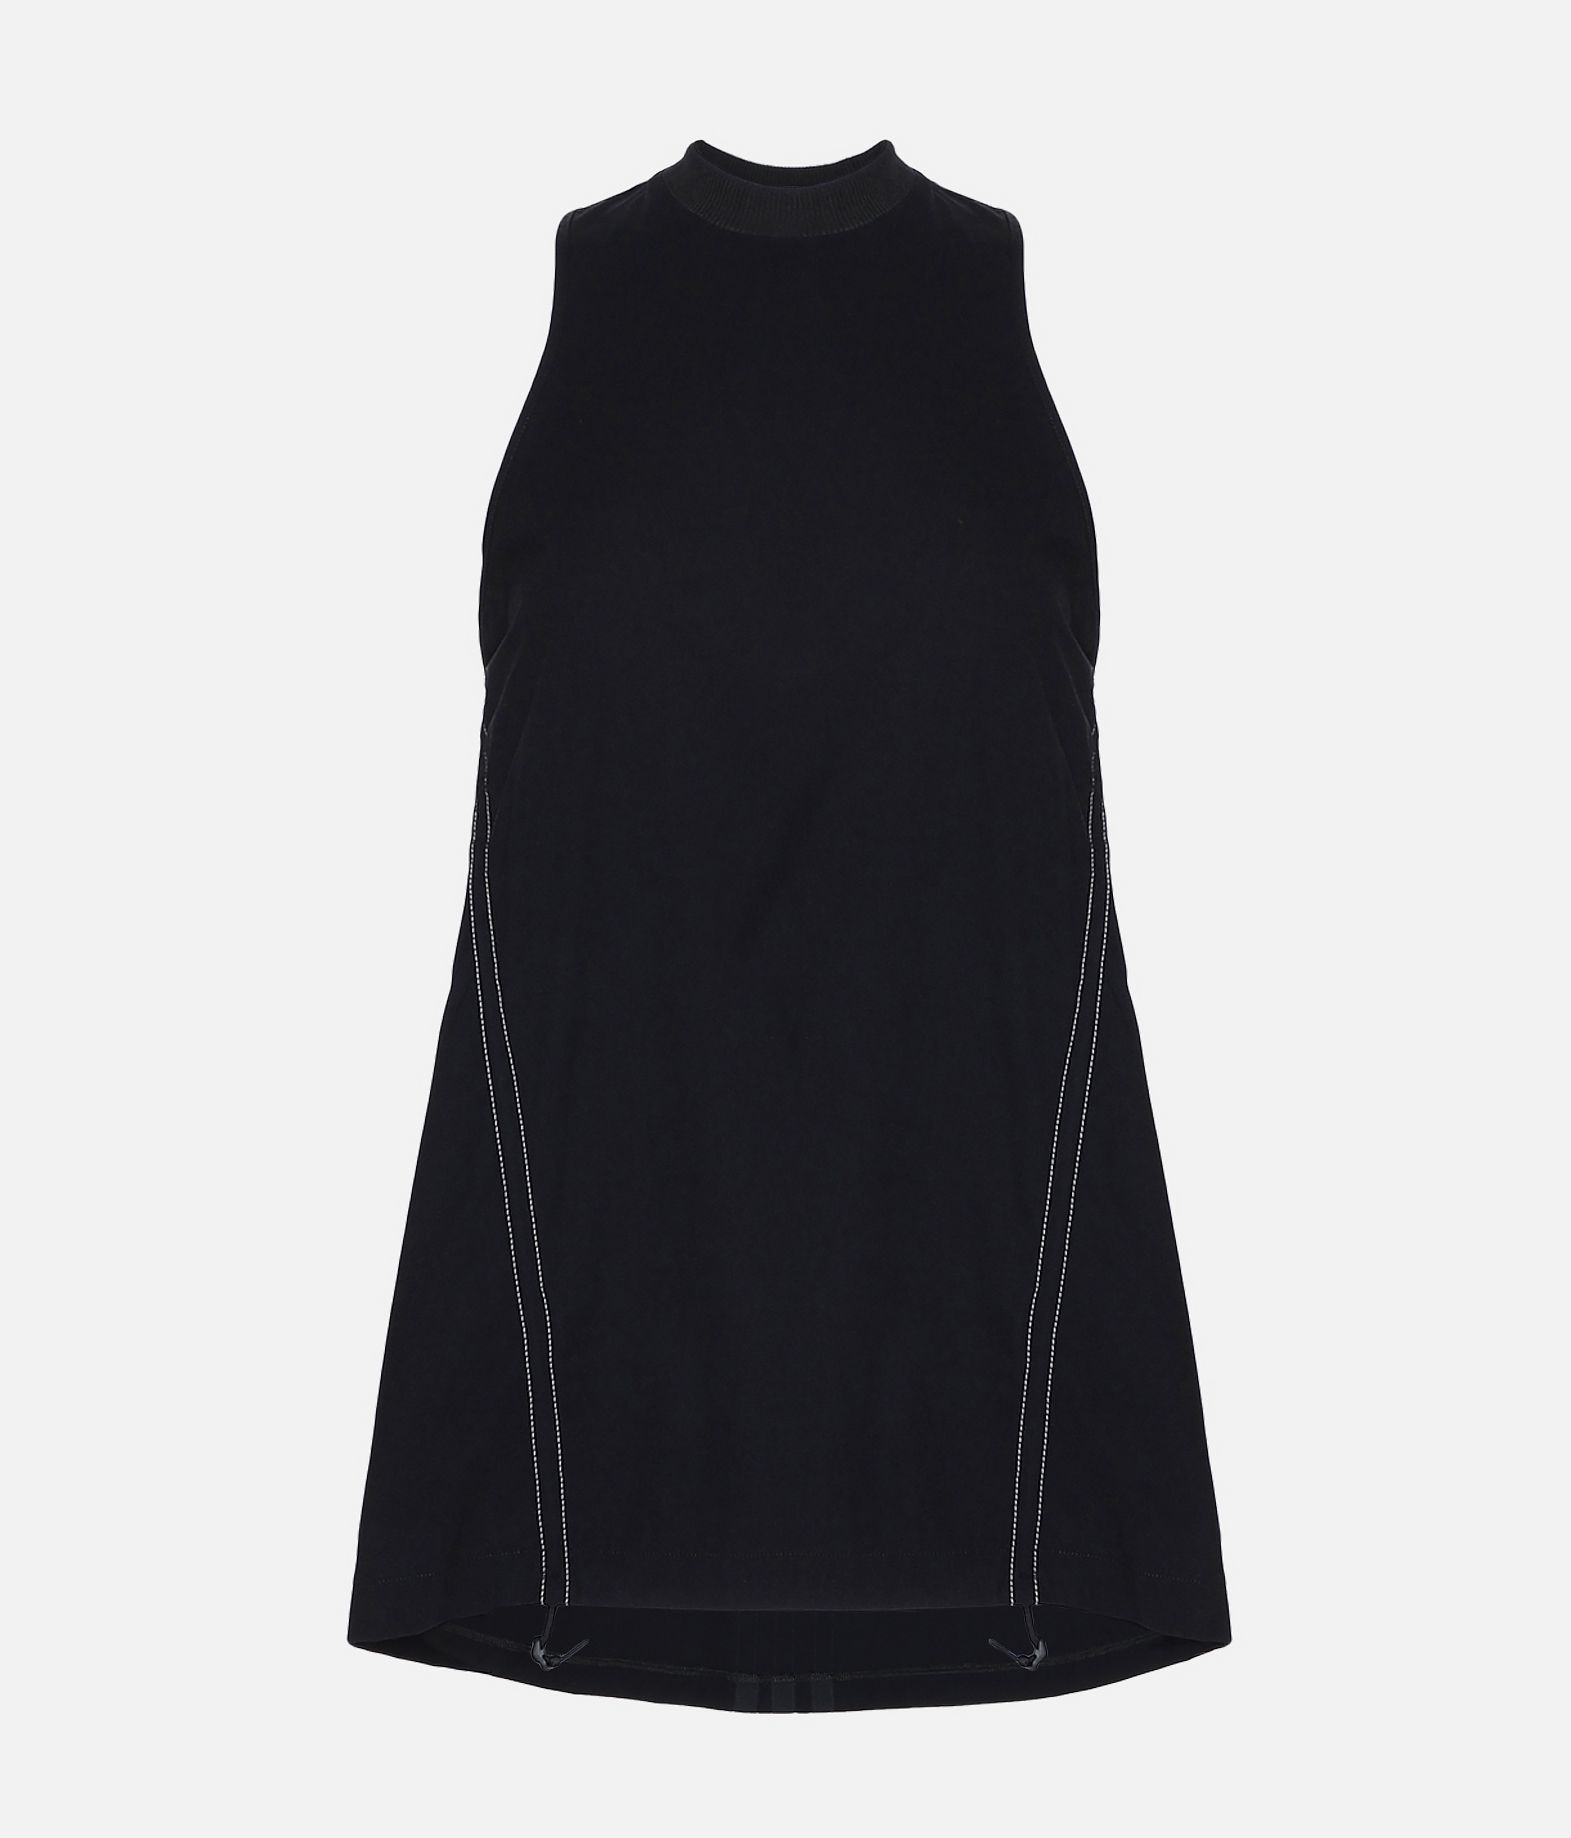 Y-3 Y-3 Light 3-Stripes Tank Top Top Woman f